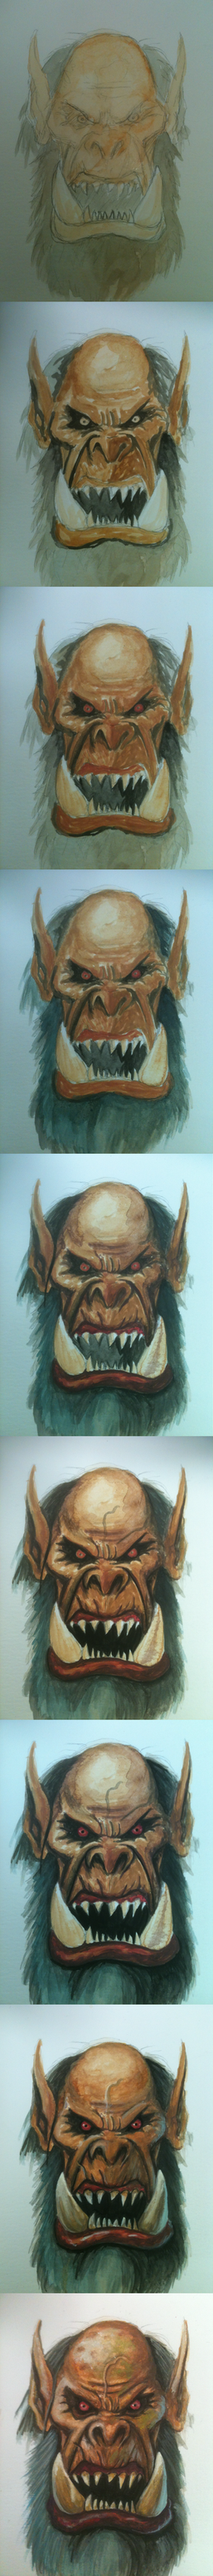 Practicing gouache - Gul'dan process by Bobibel